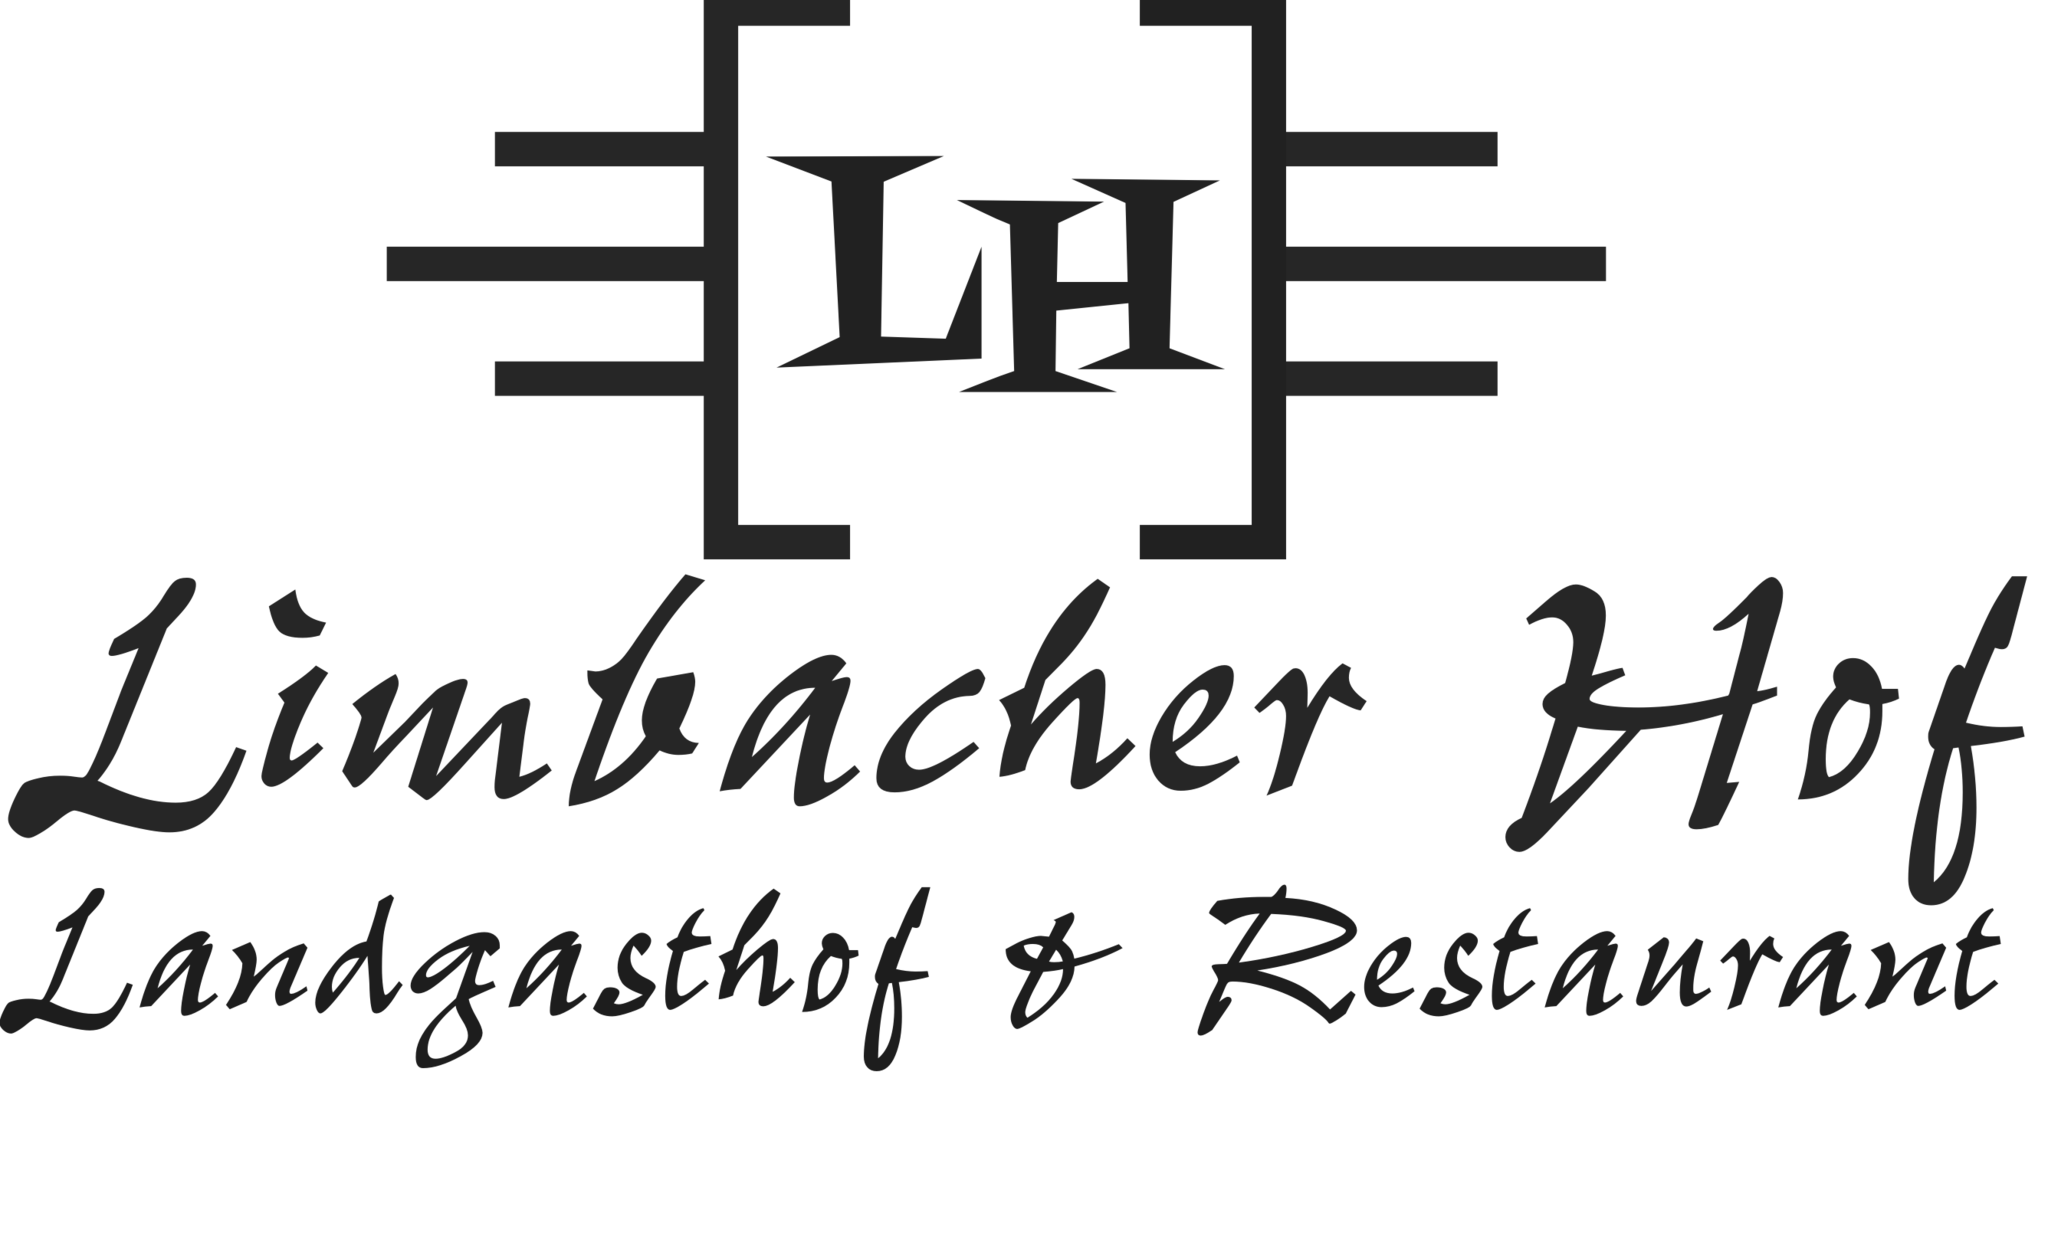 Limbacher Hof Landgasthof & Restaurant